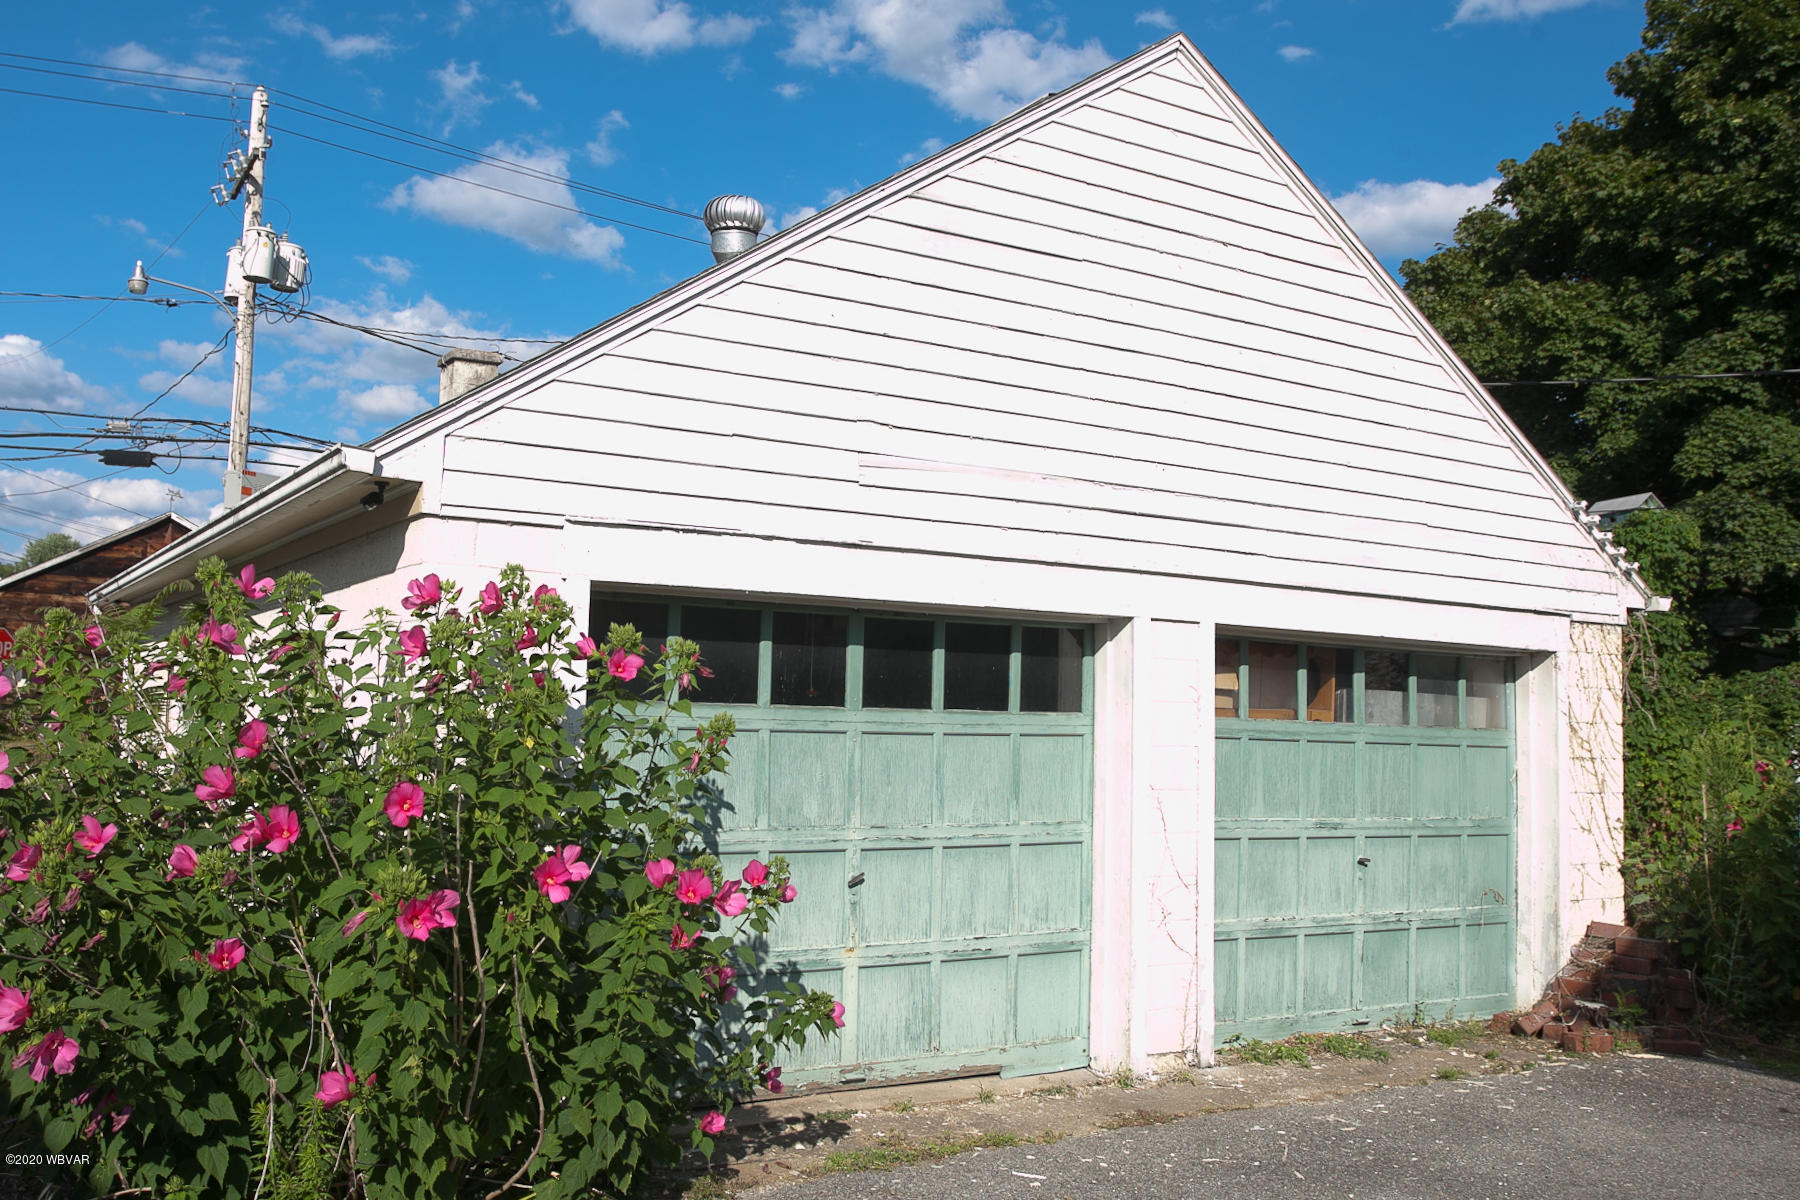 214 MAIN STREET, Watsontown, PA 17777, ,2 BathroomsBathrooms,Commercial sales,For sale,MAIN,WB-90805